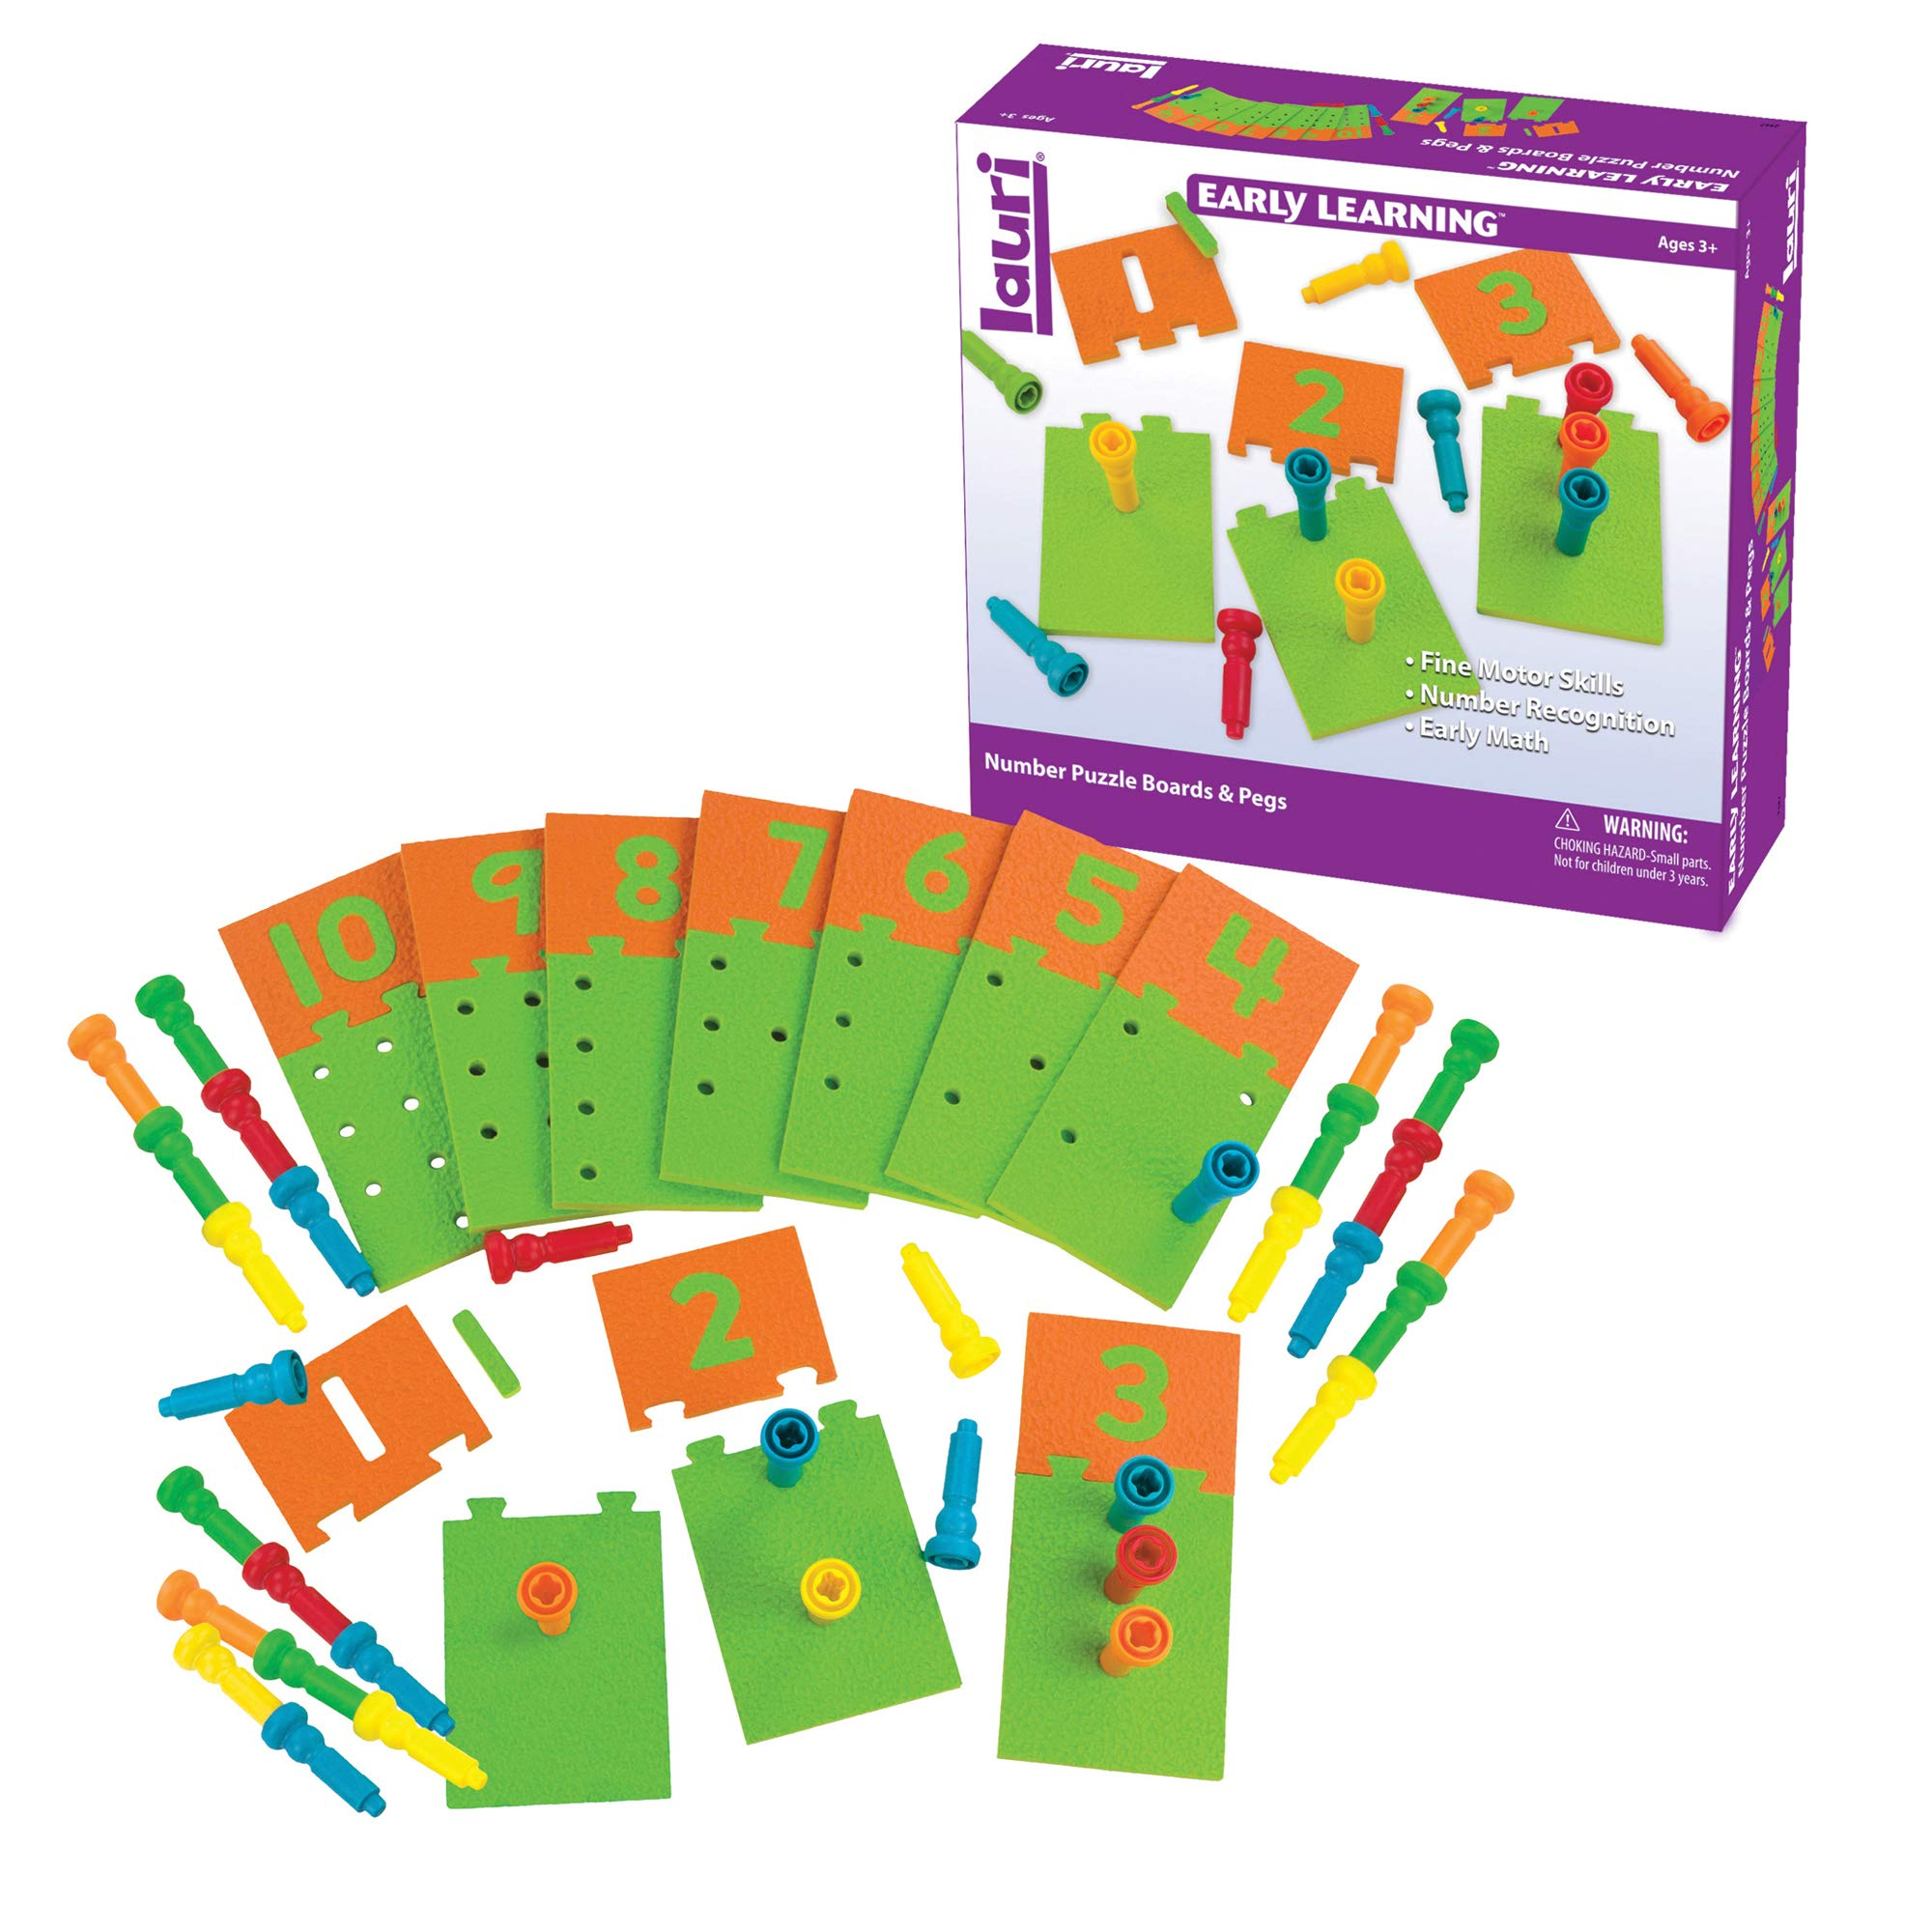 Lauri Number Puzzle Boards & Pegs by PlayMonster